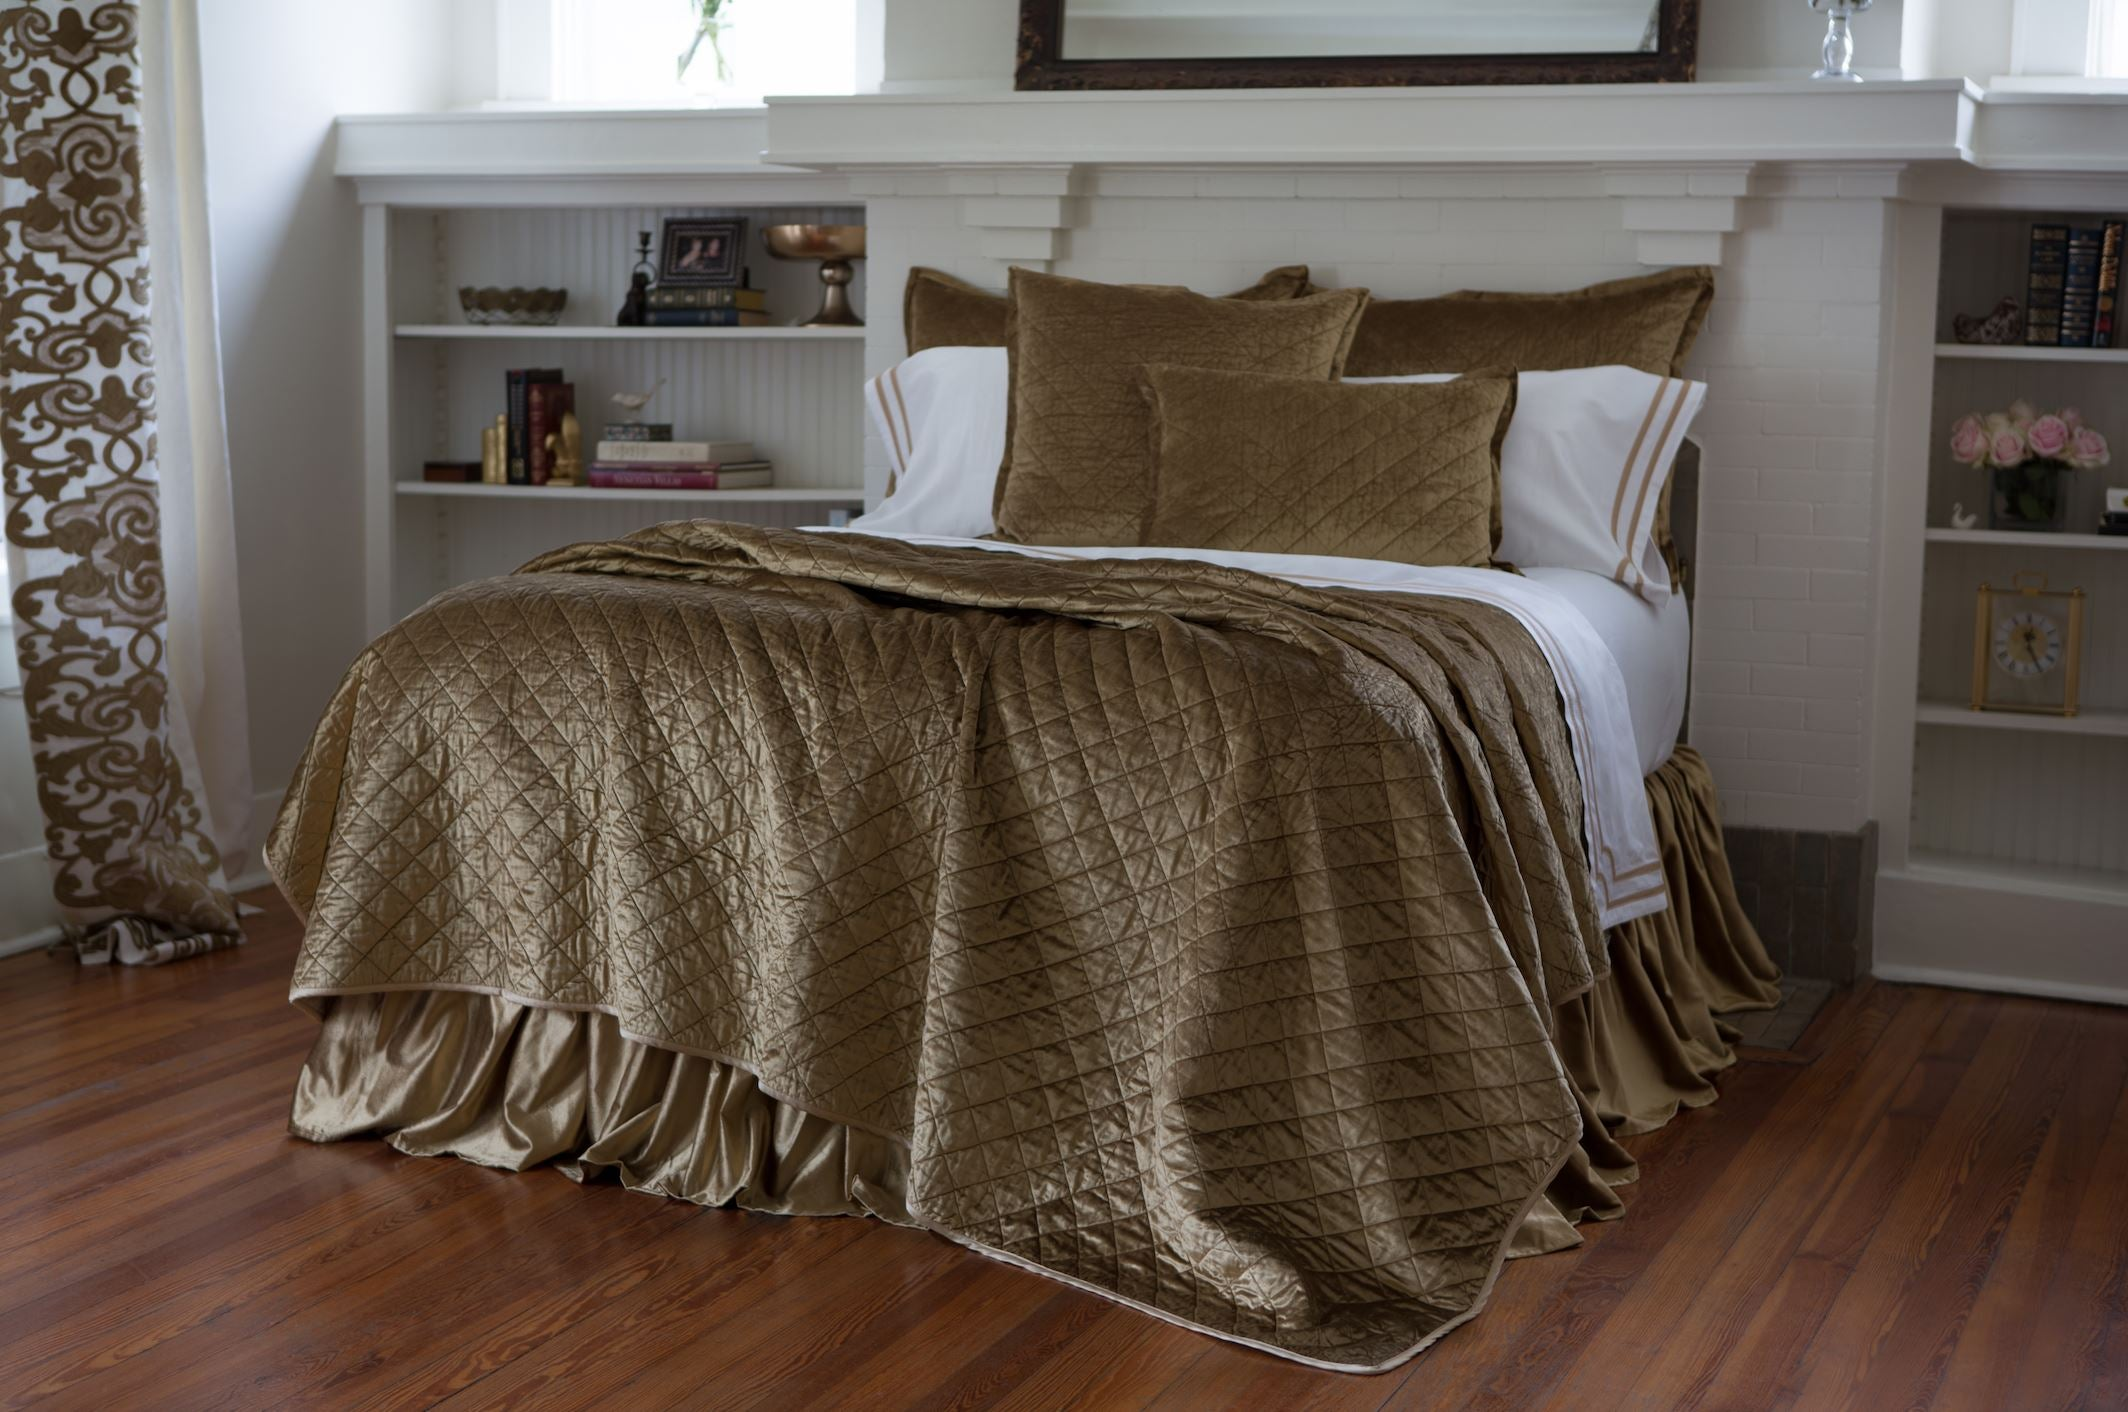 Lili Alessandra Chloe Straw Quilt, Pillow, Bedskirt at Fig Linens